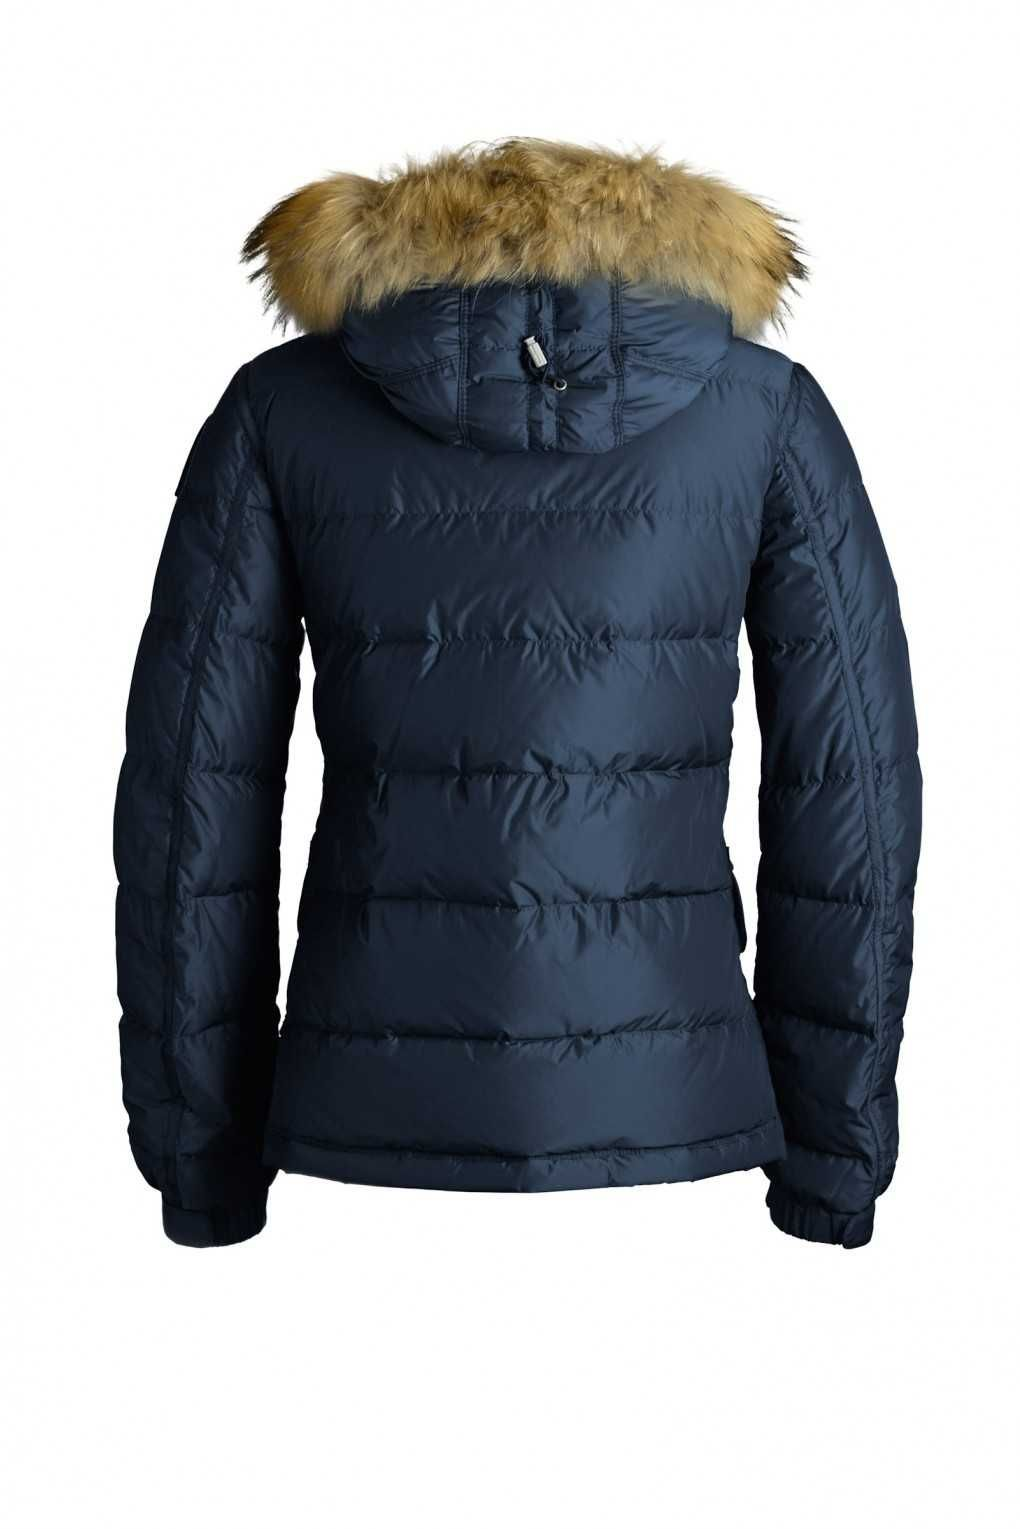 parajumpers jacket price